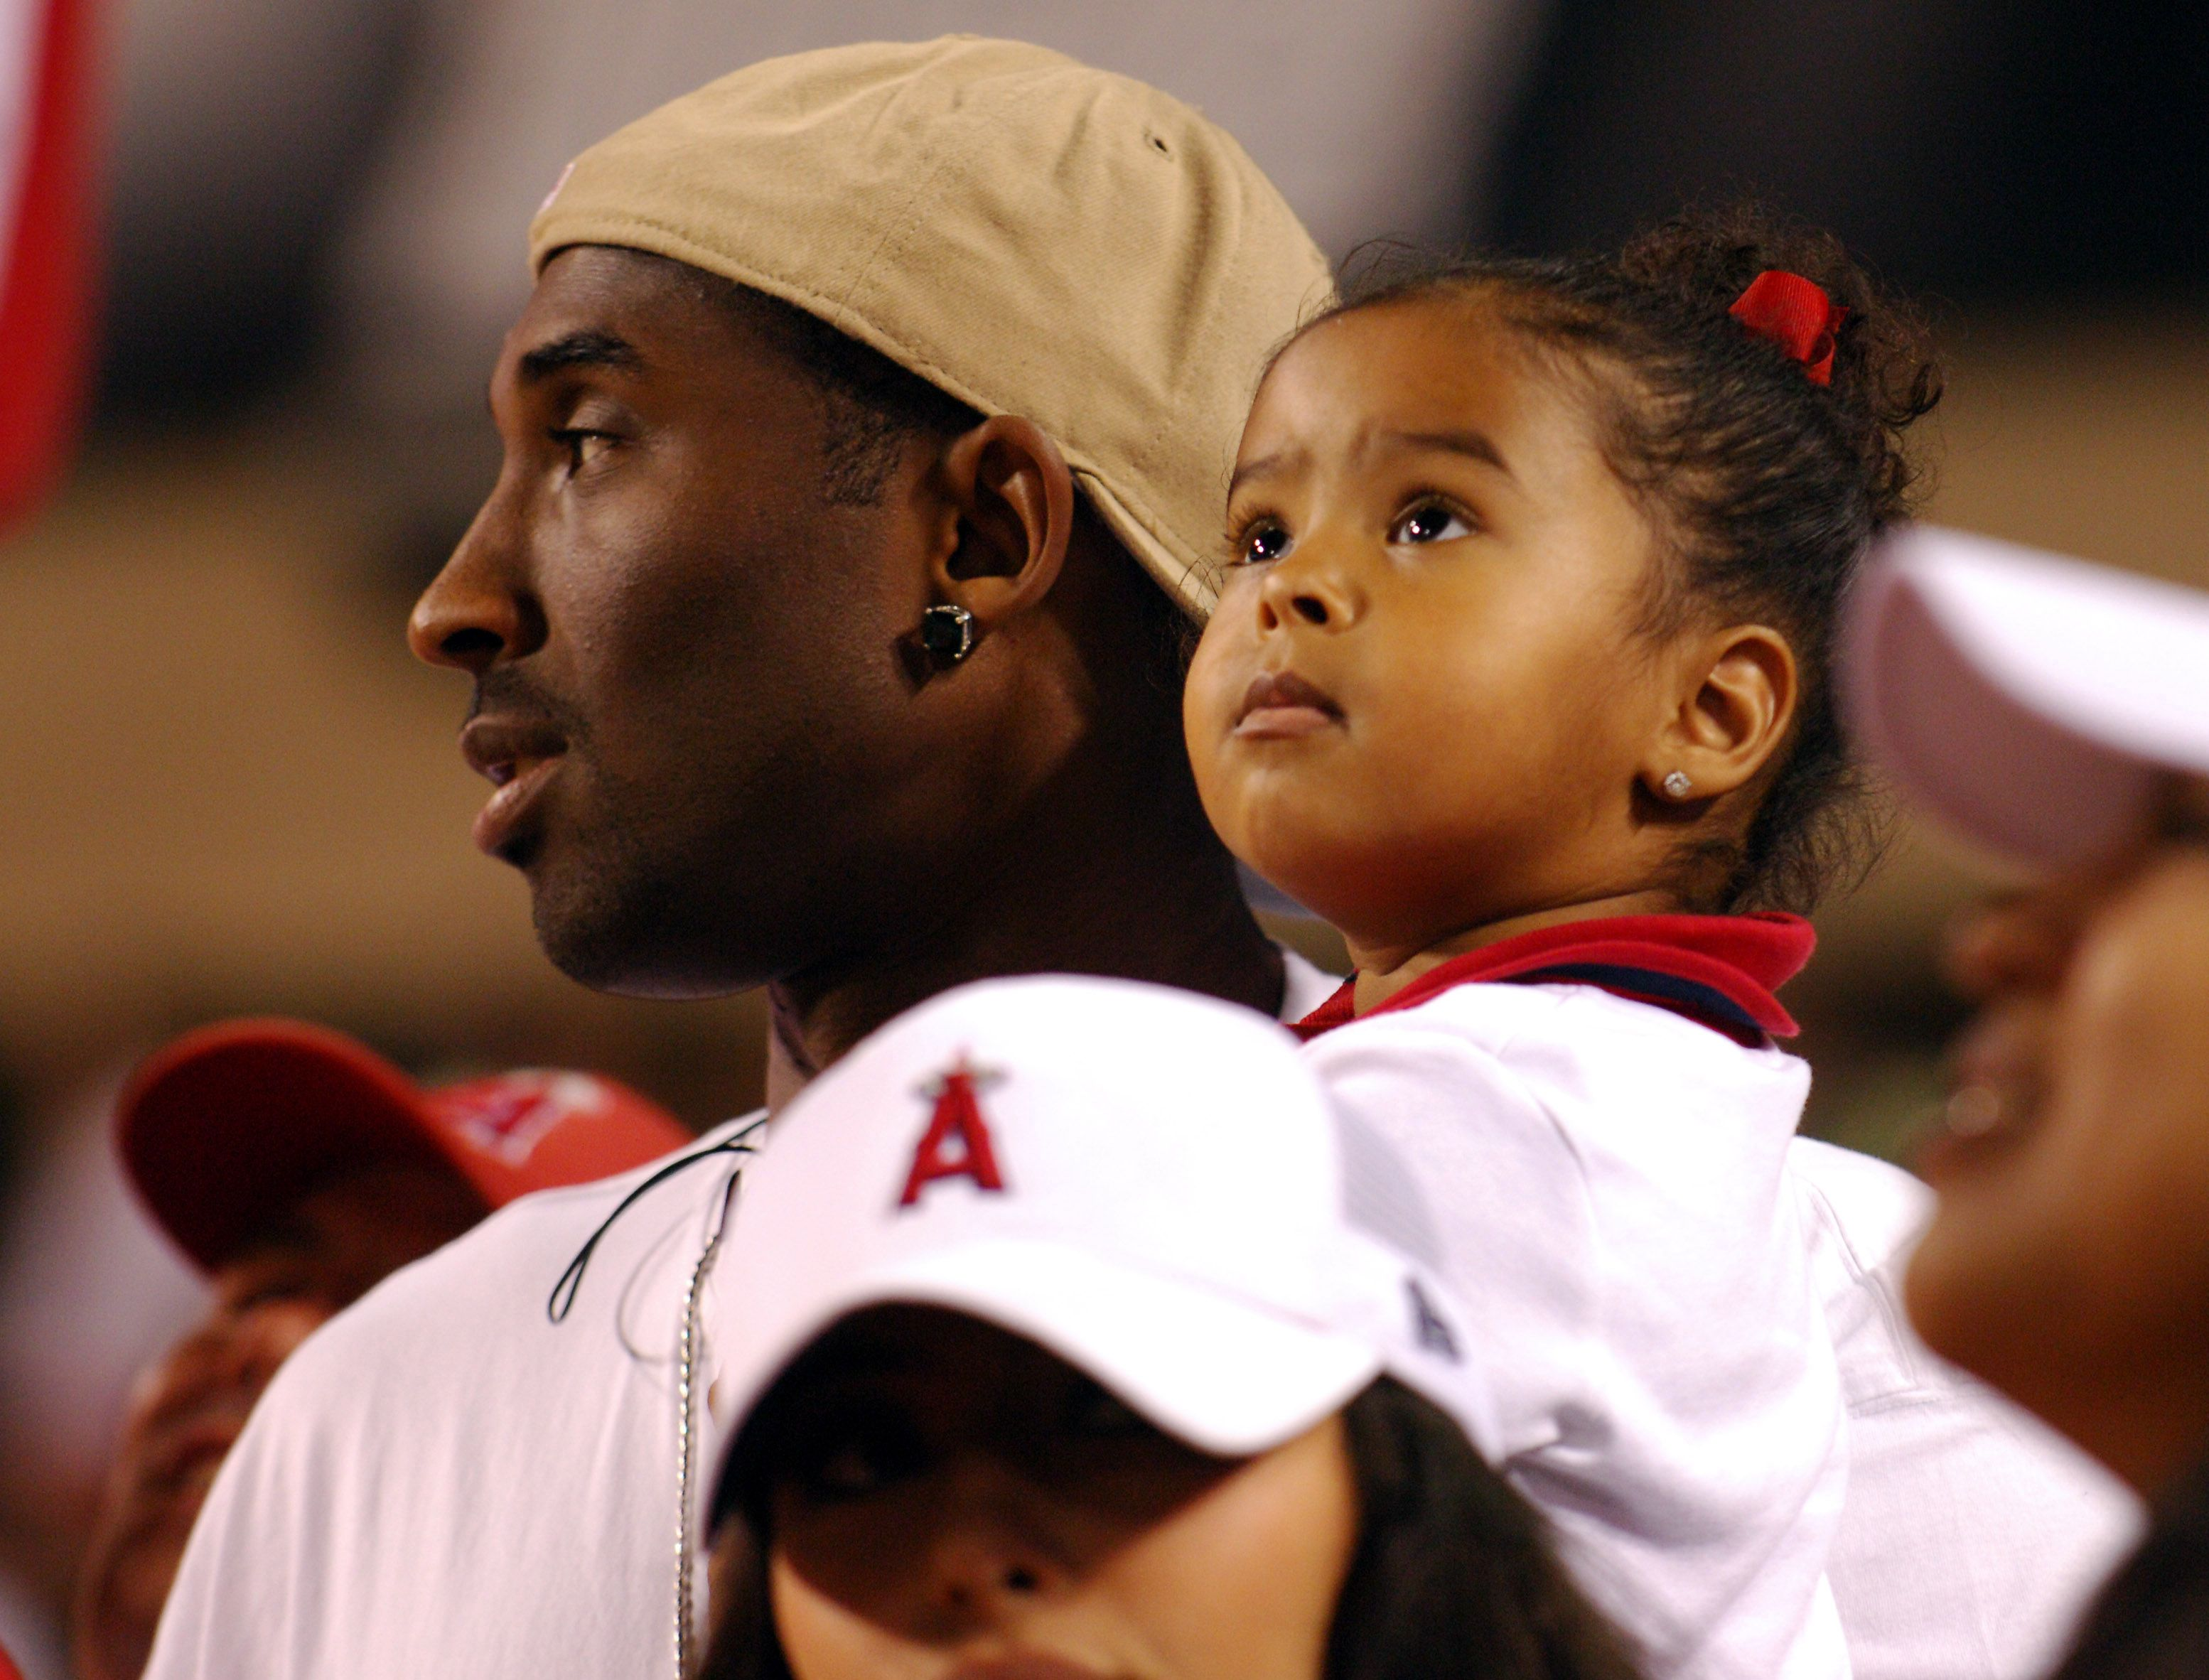 Kobe Bryant and Natalia Diamante Bryant at the Los Angeles Angels of Anaheim game against the New York Yankees at Angel Stadium in Anaheim, Calif. on Saturday, July 23, 2005. | Source: Getty Images